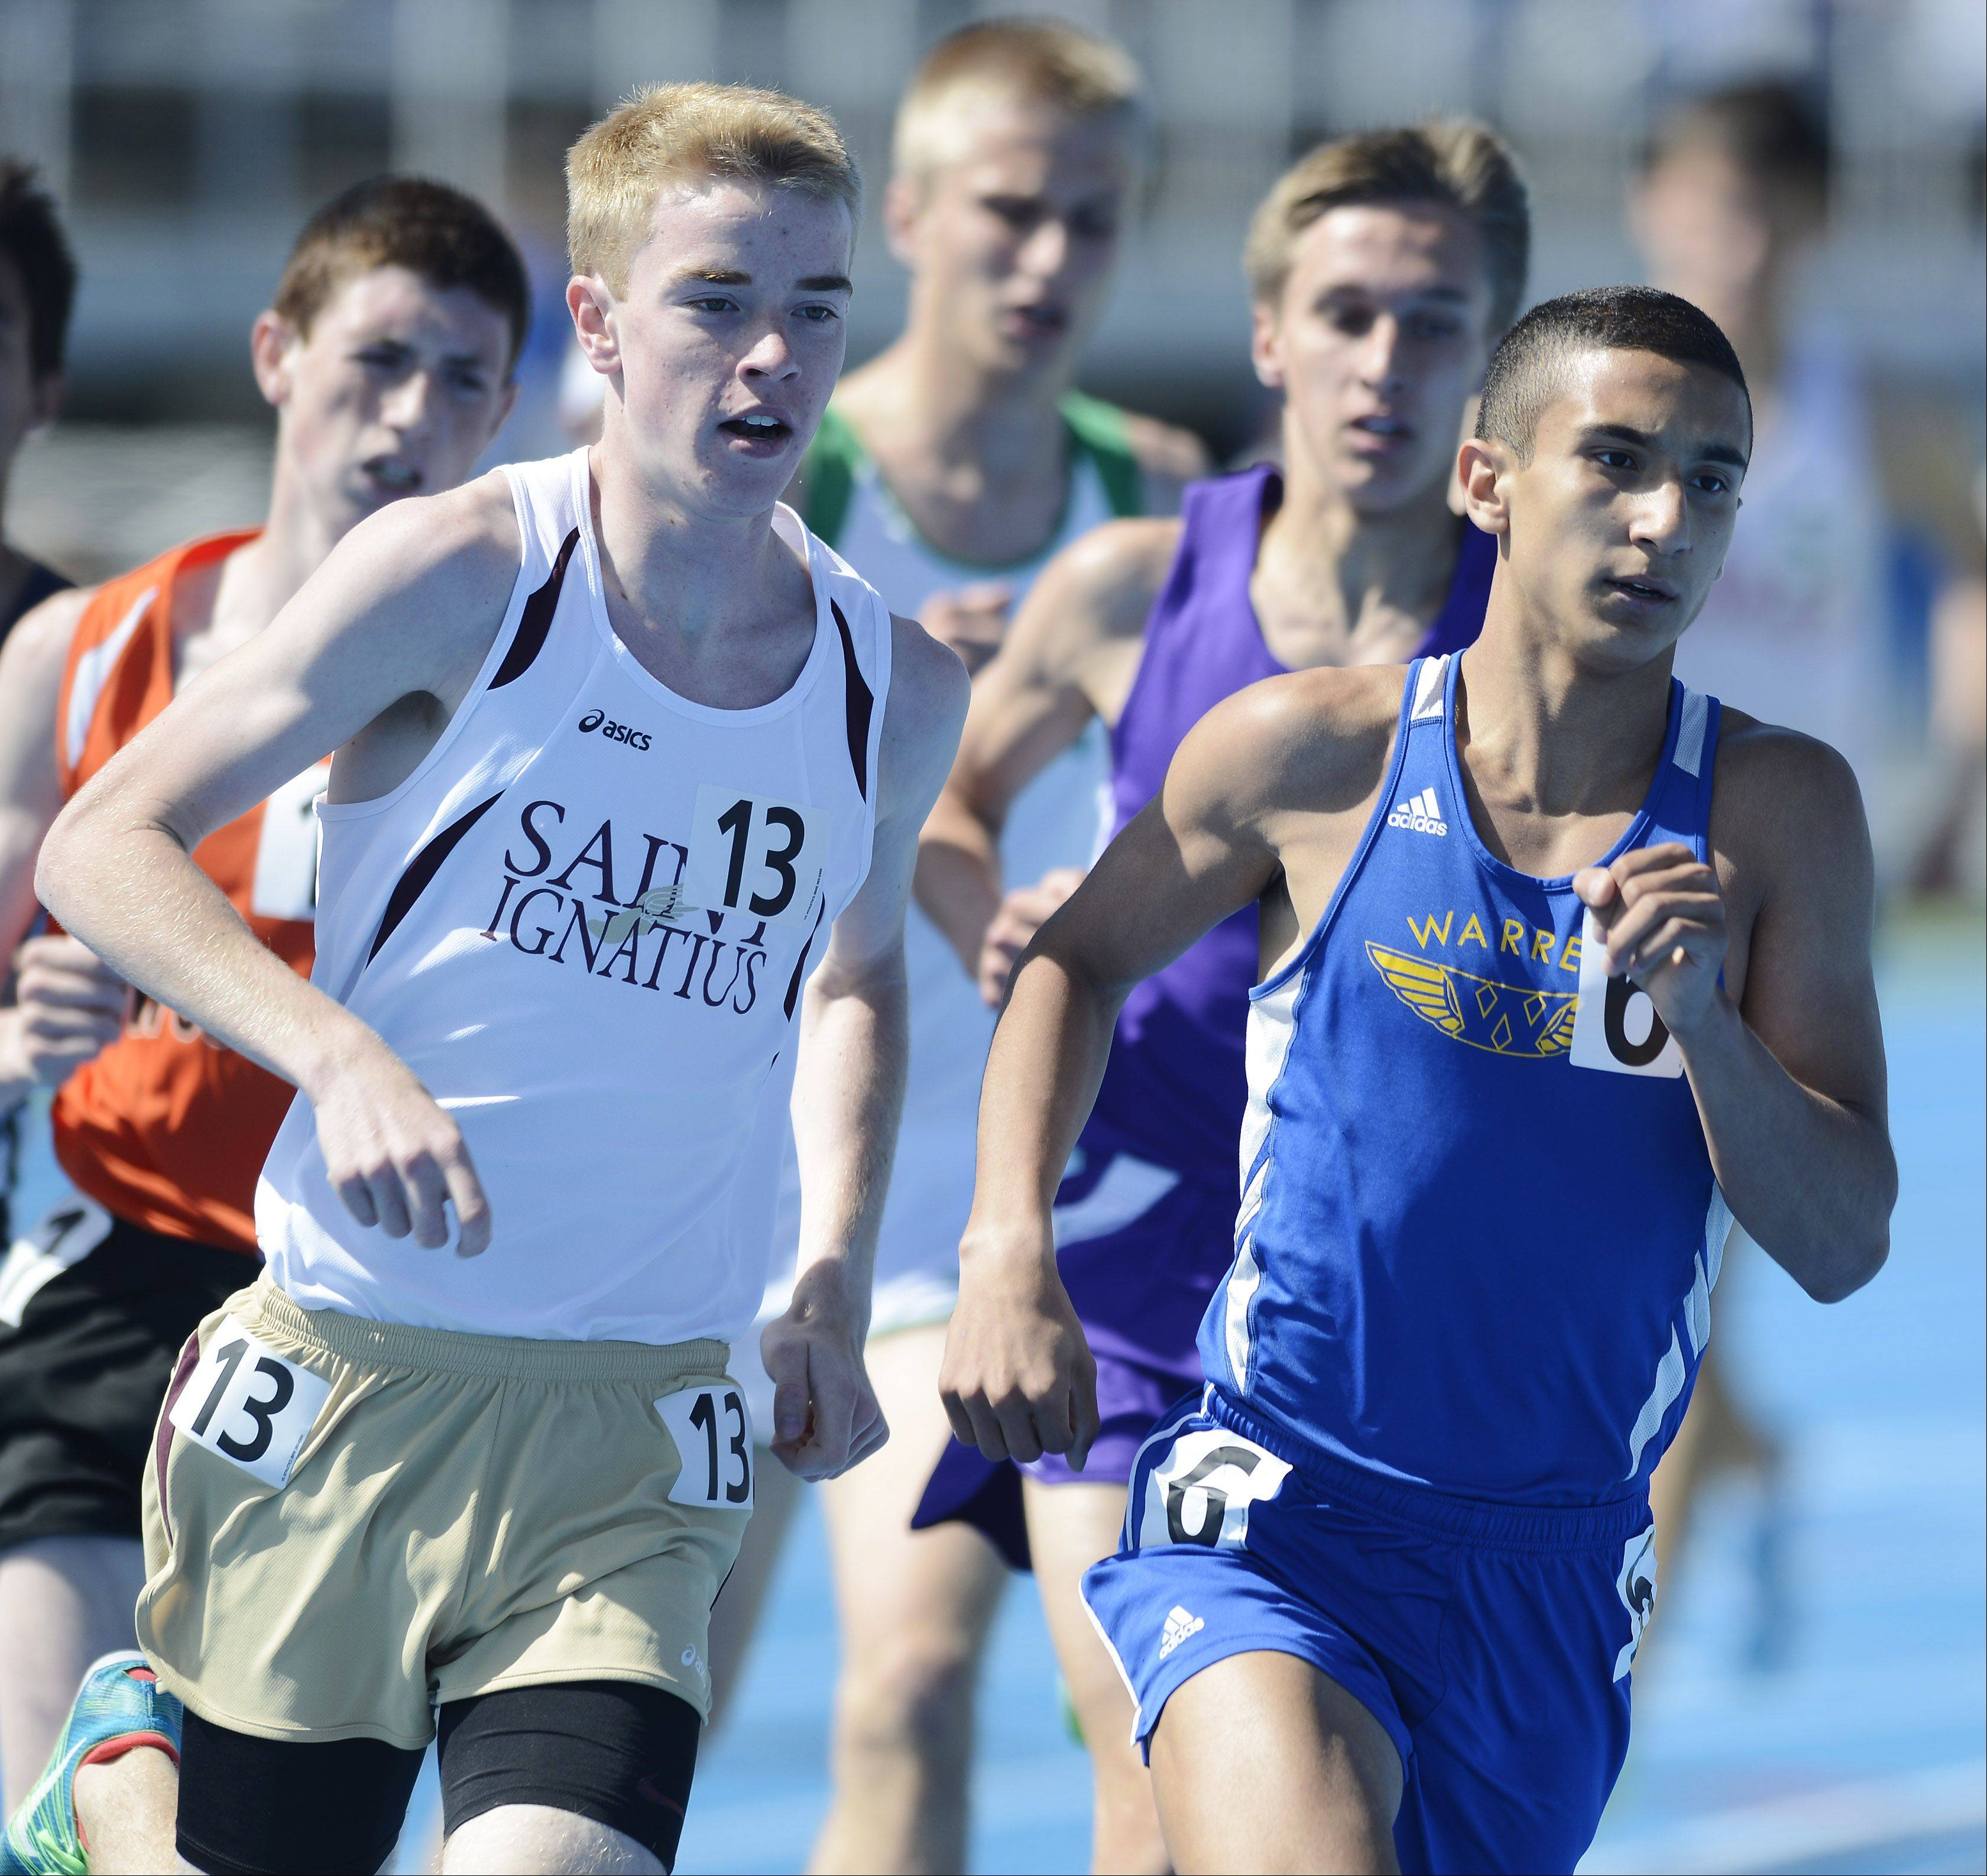 Warren's Martin Martinez competes in the Class 3A 1,600-meter run during the boys track state meet preliminaries in Charleston on Friday.